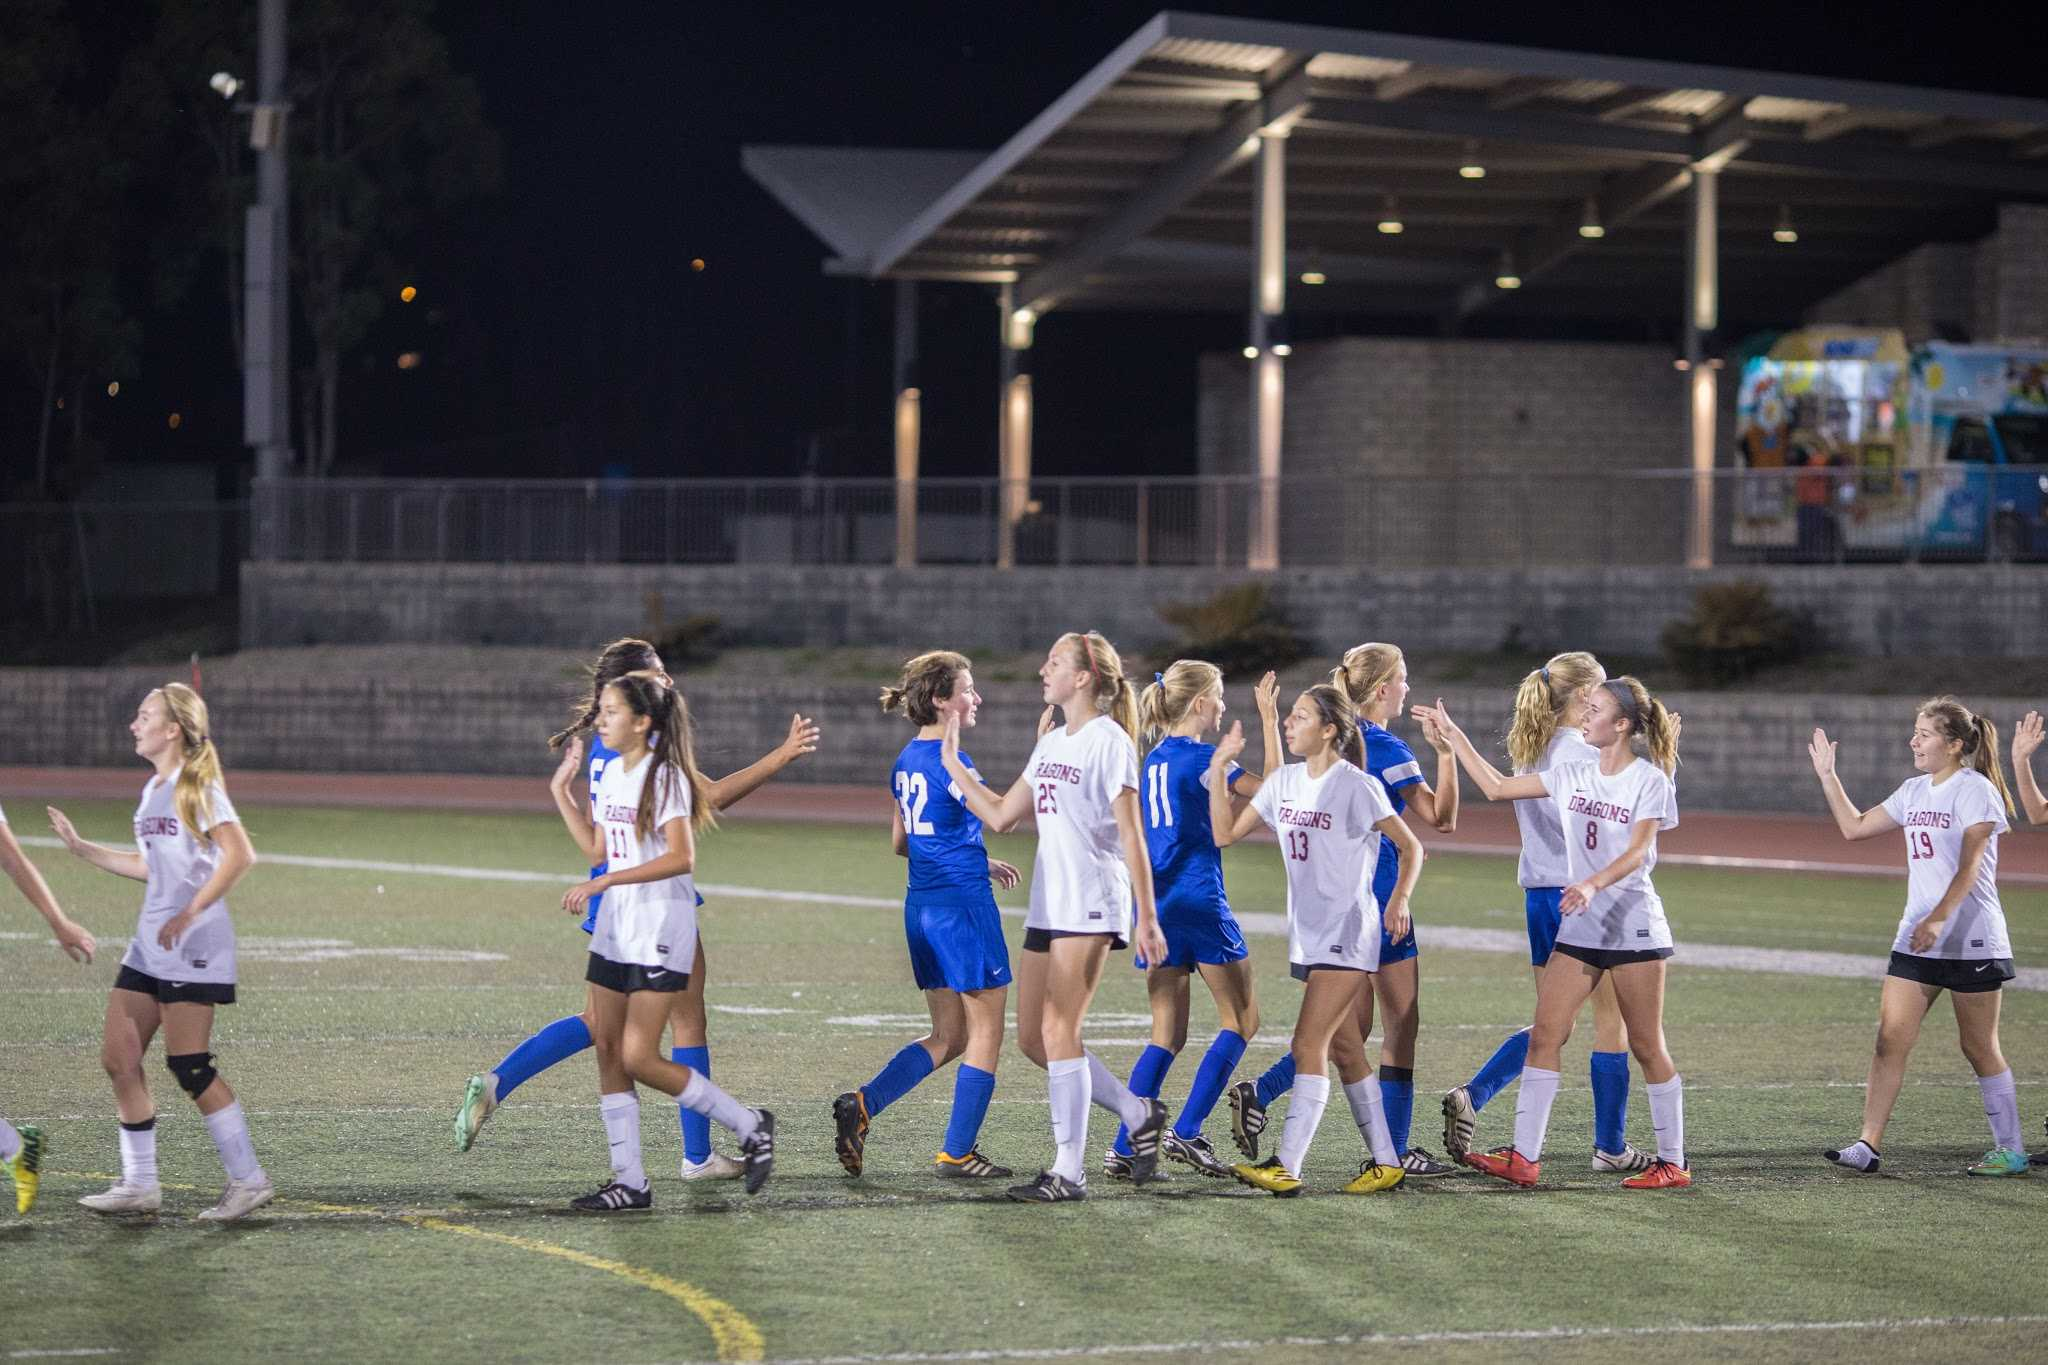 Both teams high five after the game. Credit: Austin Hunt/ The Foothill Dragon Press